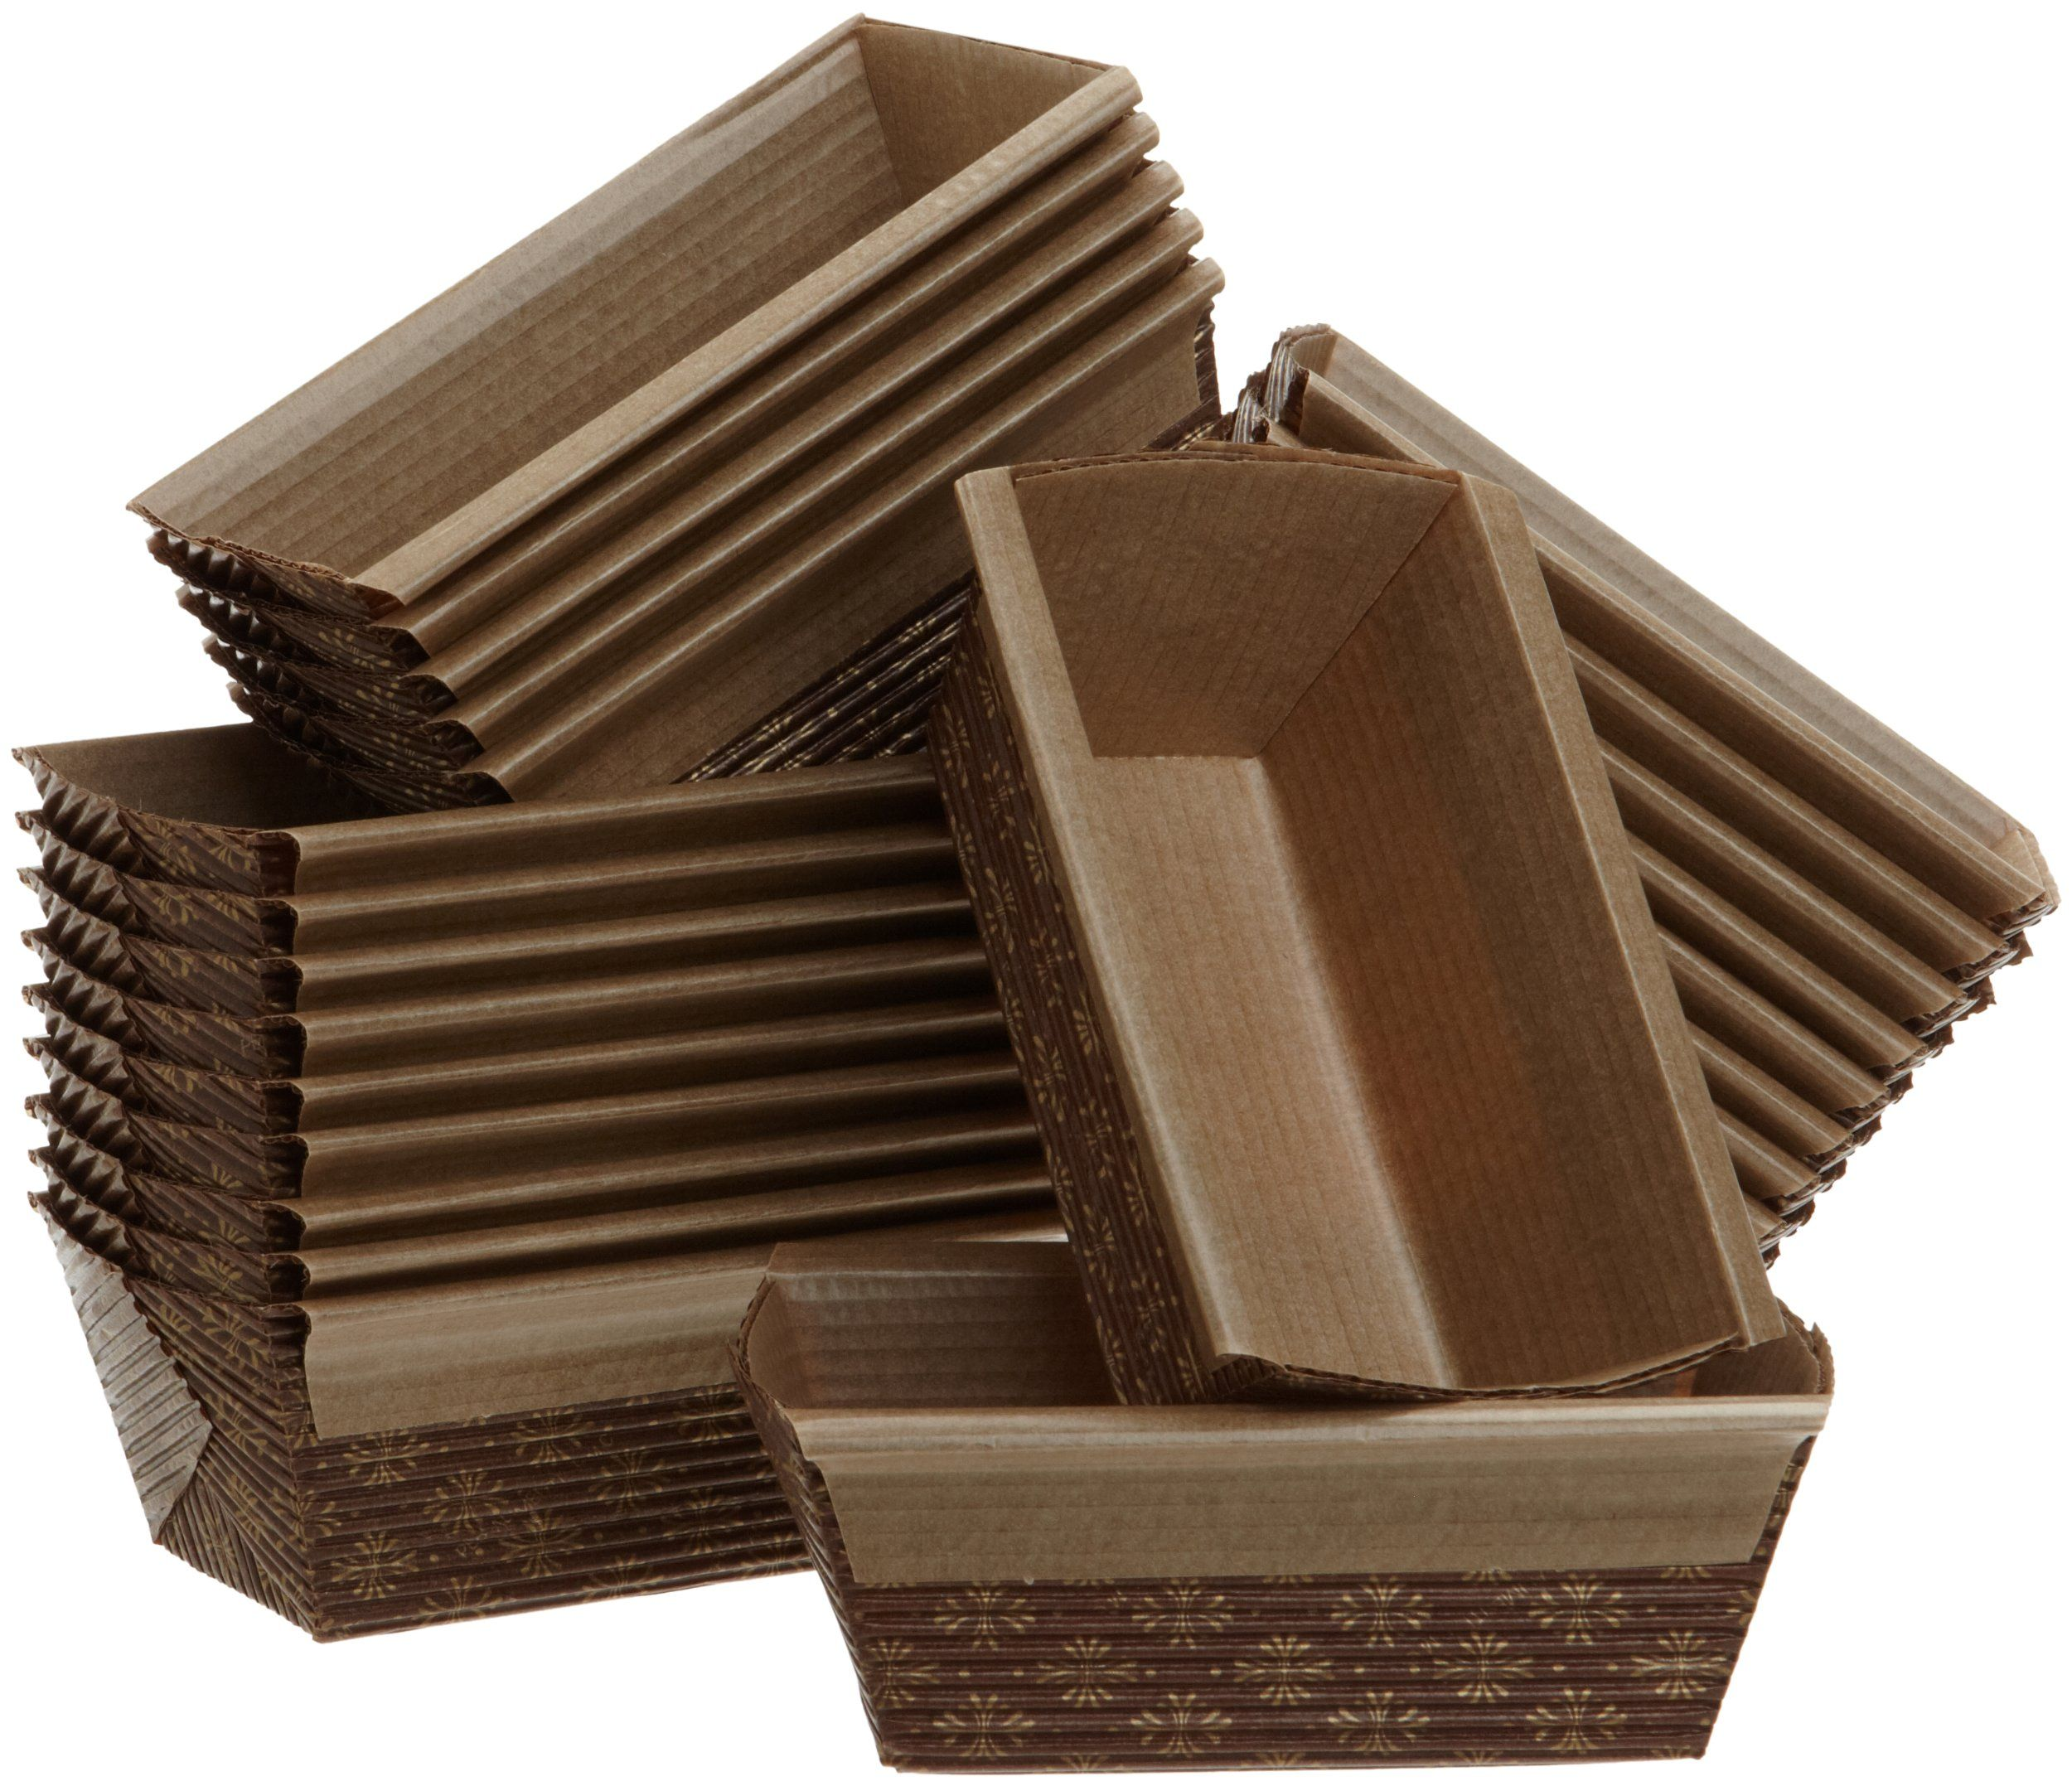 Kitchen supply 4 x 2 x 2 inch paper loaf pan